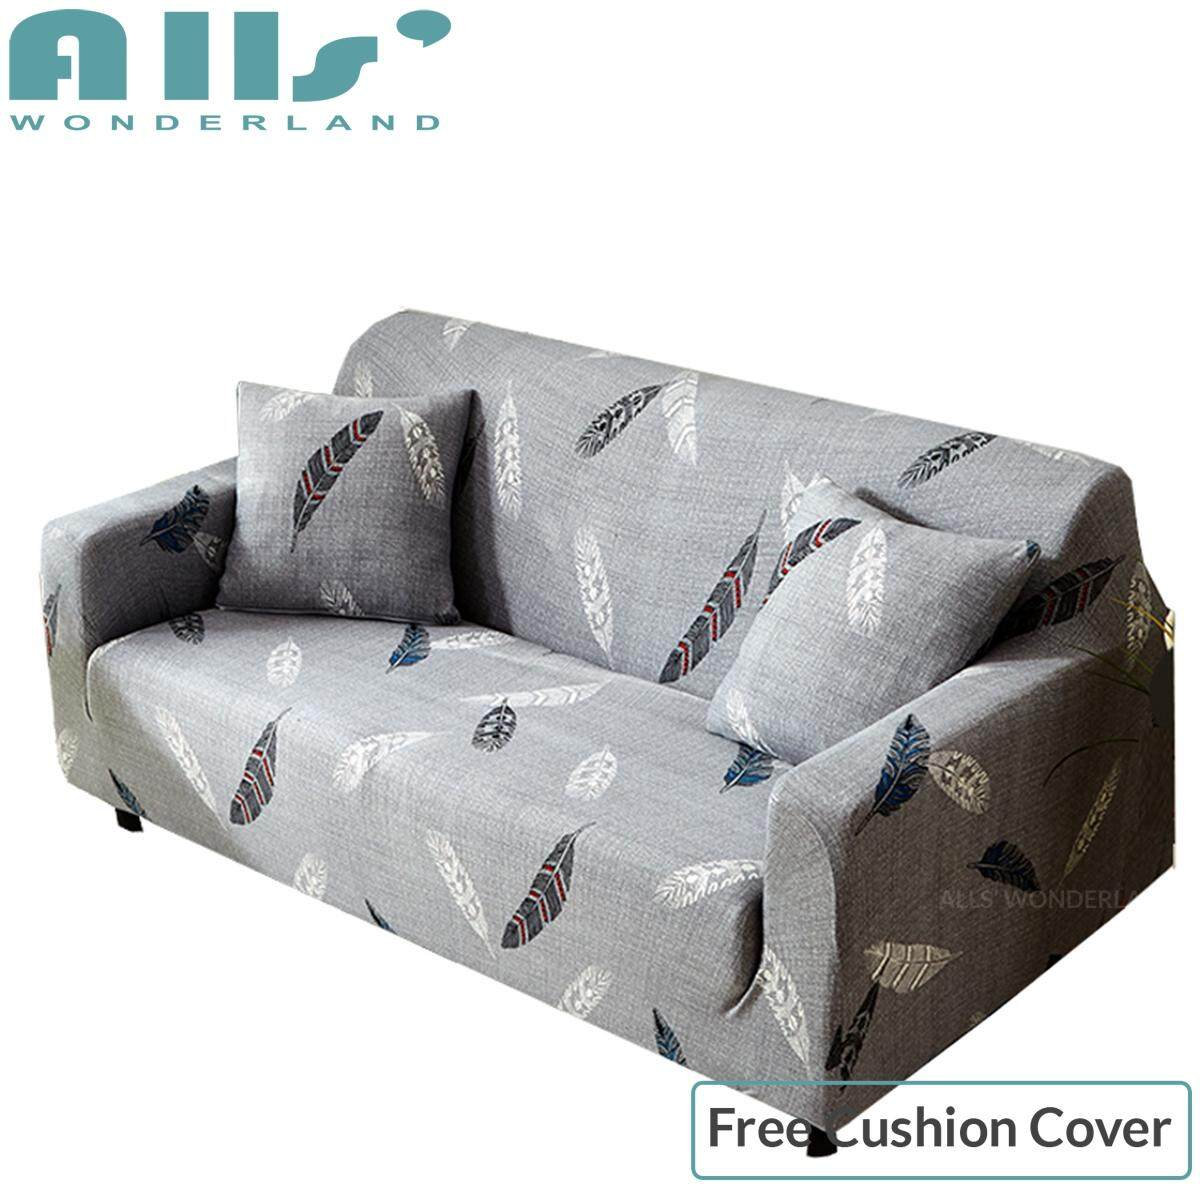 【sofa cover】Fit for Sofa size 140-175cm Modern style sofa cover for living room slipcovers furniture covers L shaped Sofa Cover Polyester Elastic Sofa Covers 1C